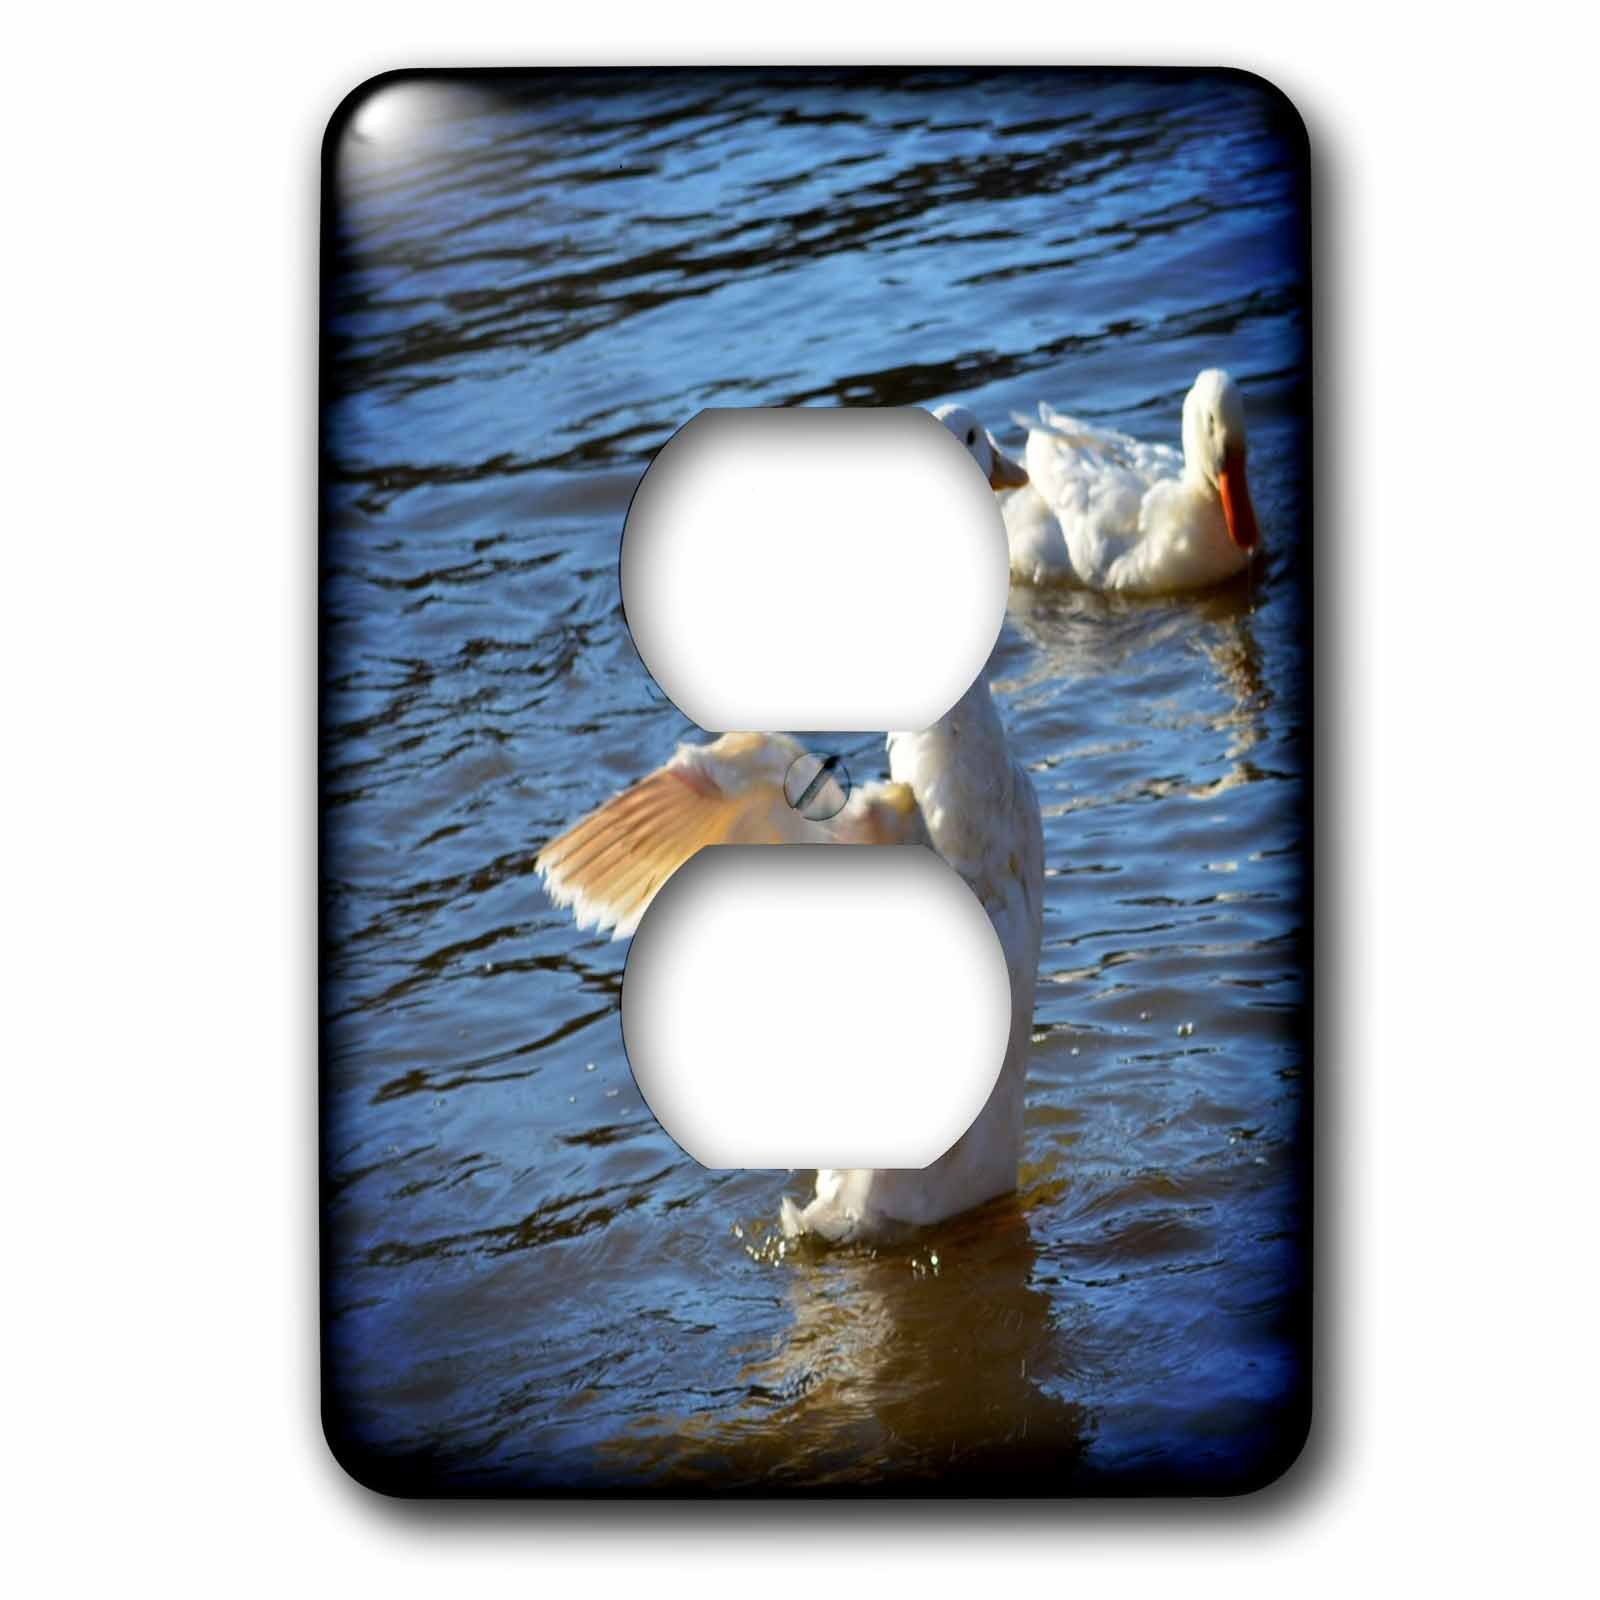 3dRose WhiteOaks Photography and Artwork - Ducks - Spread Your Wings is a photo of a duck with its wings open - Light Switch Covers - 2 plug outlet cover (lsp_265332_6)